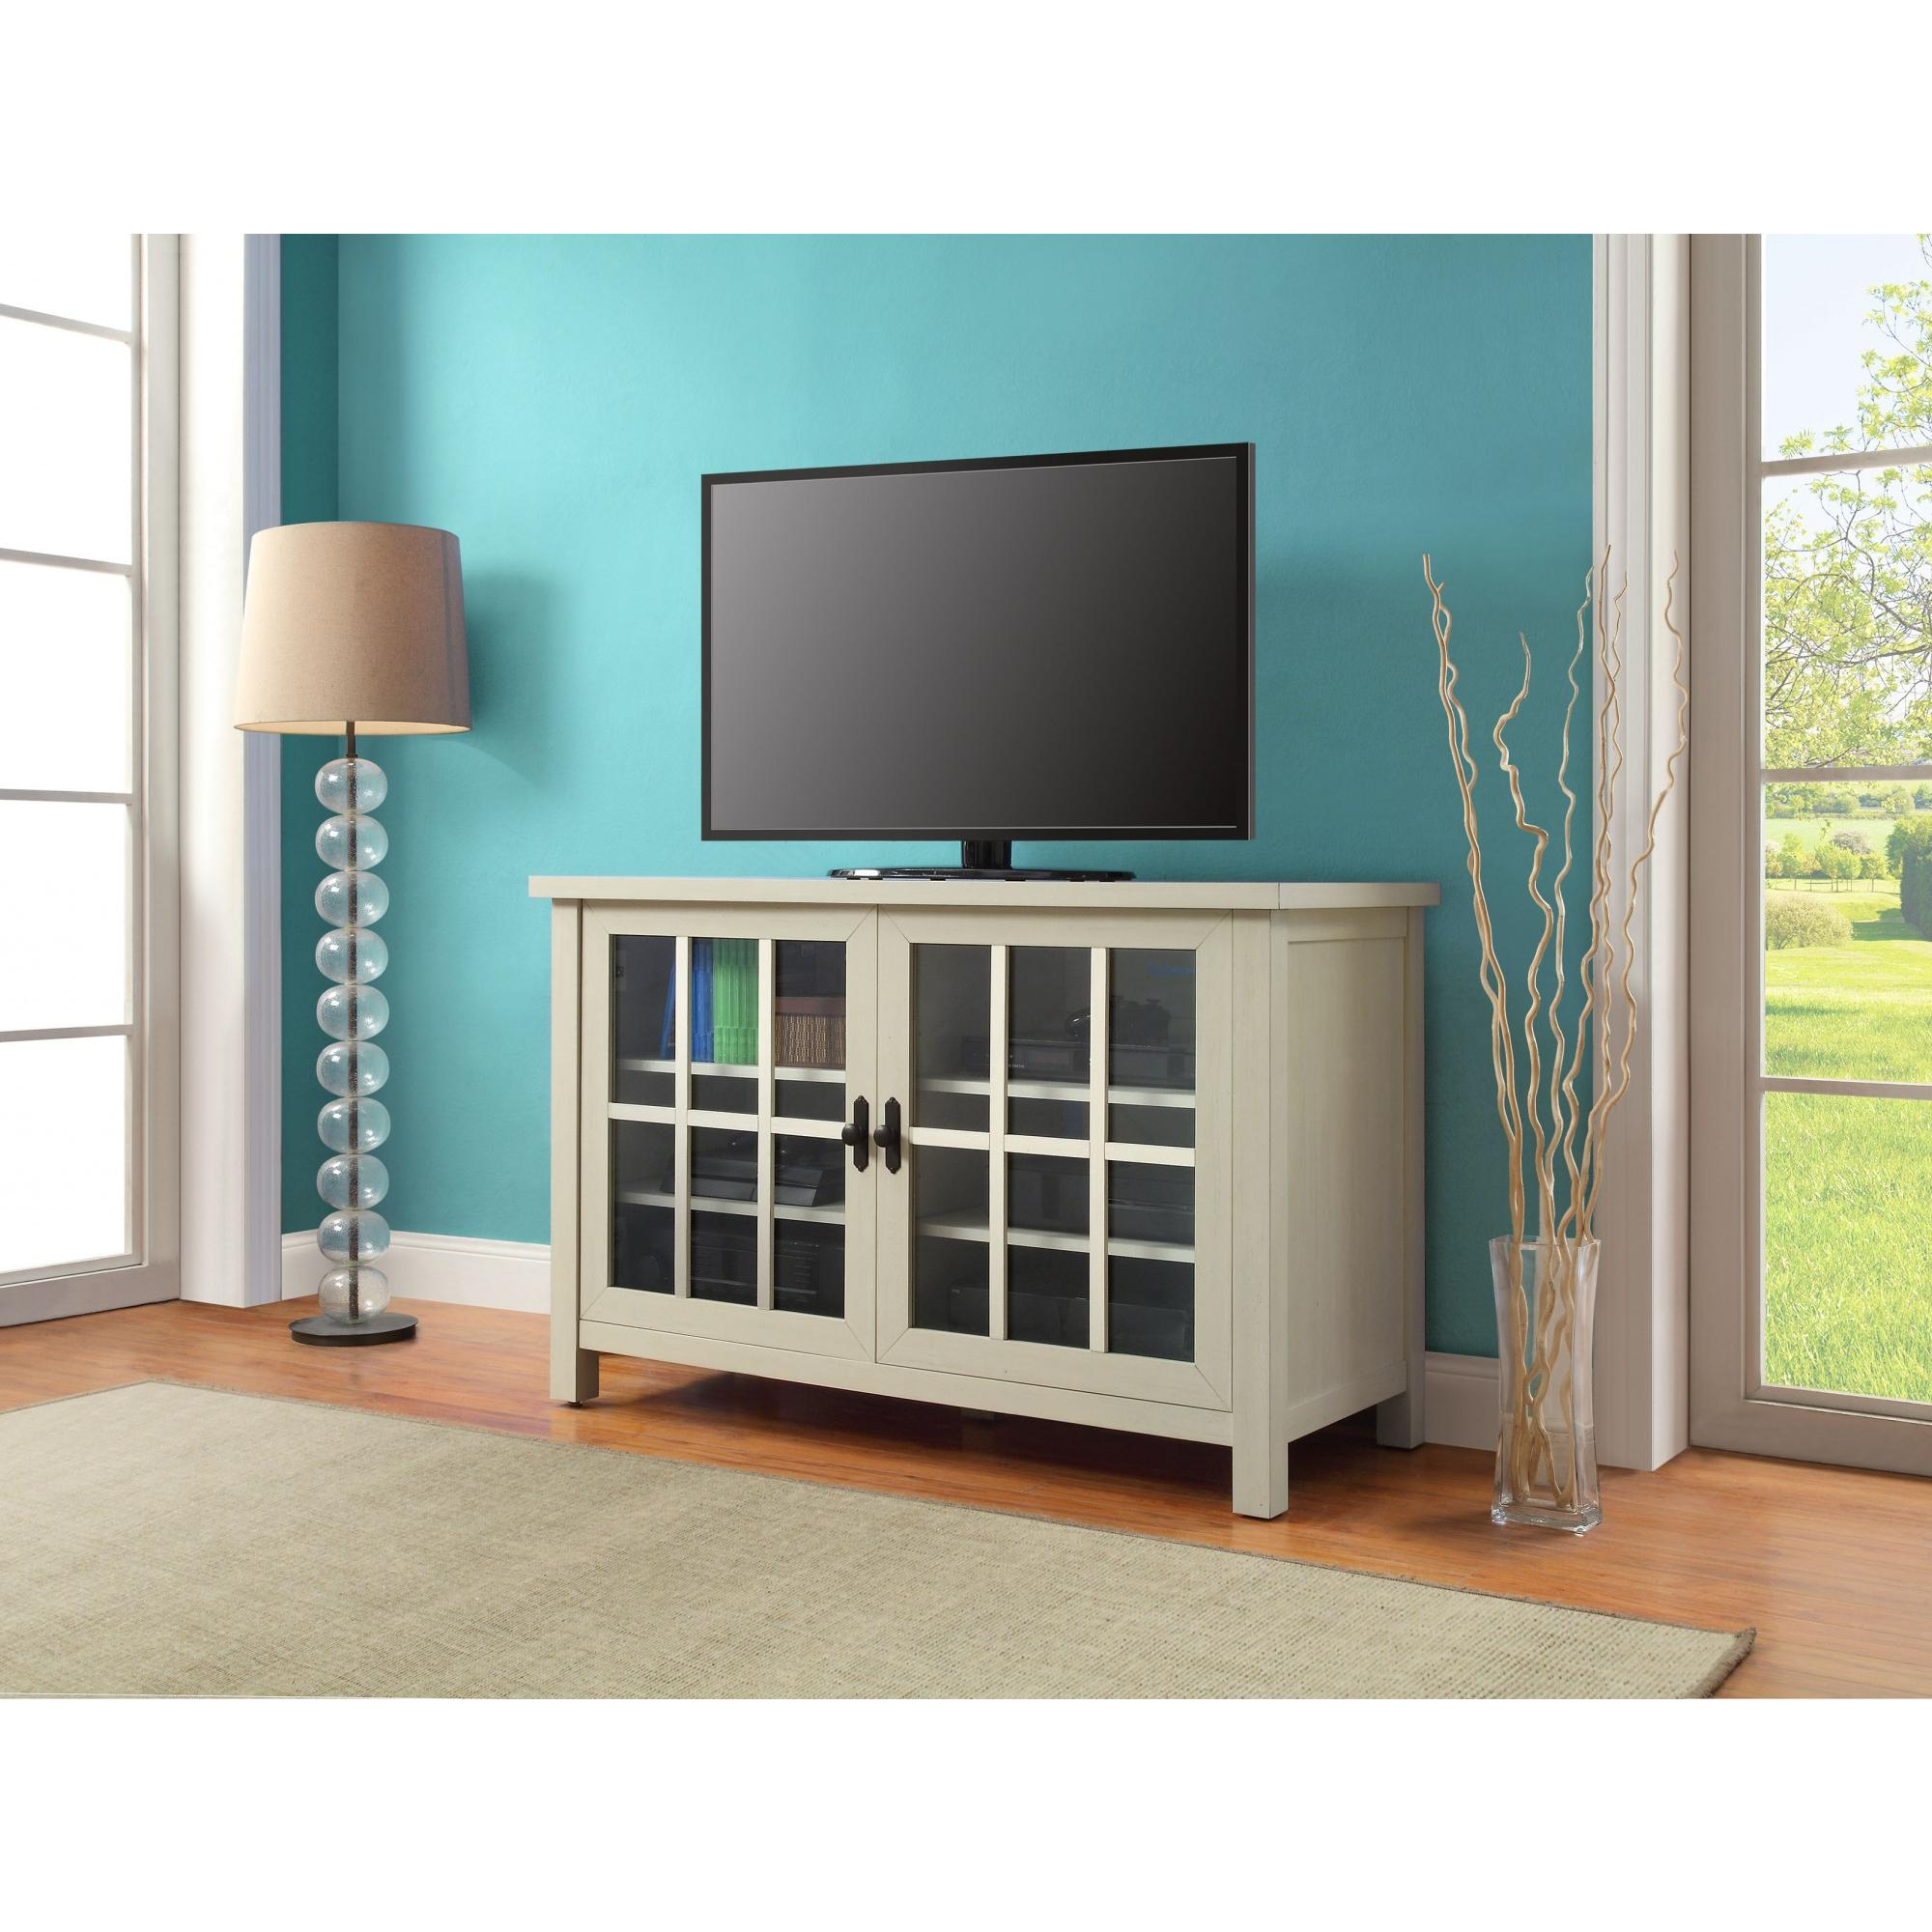 Better Homes And Gardens Oxford Square Tv Console For Tvs Up To 55 Intended For Oxford 84 Inch Tv Stands (View 2 of 20)